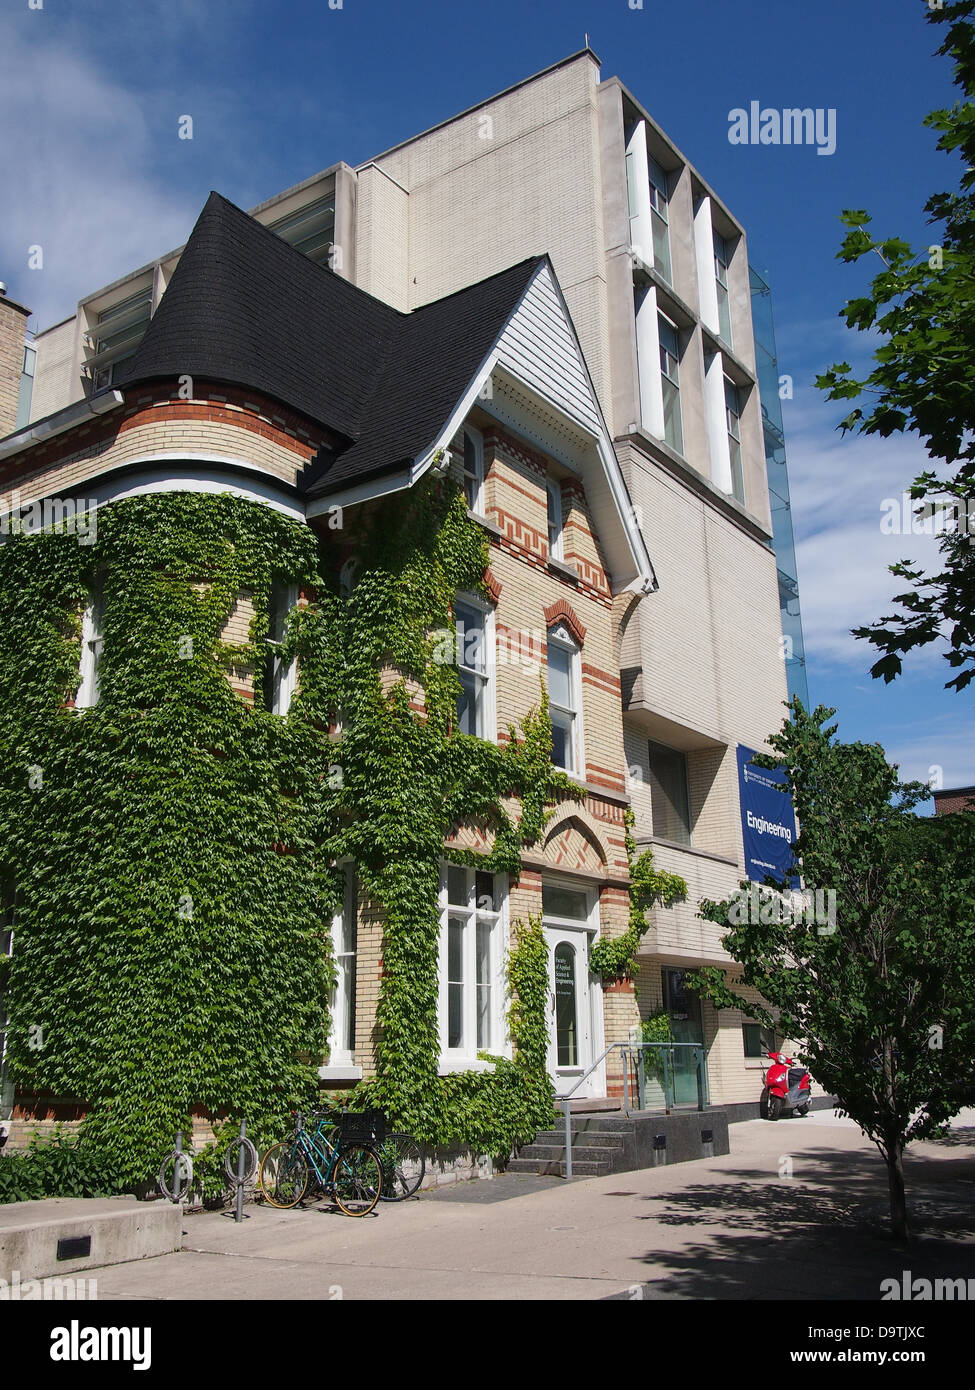 University of Toronto, old house  with modern addition - Stock Image